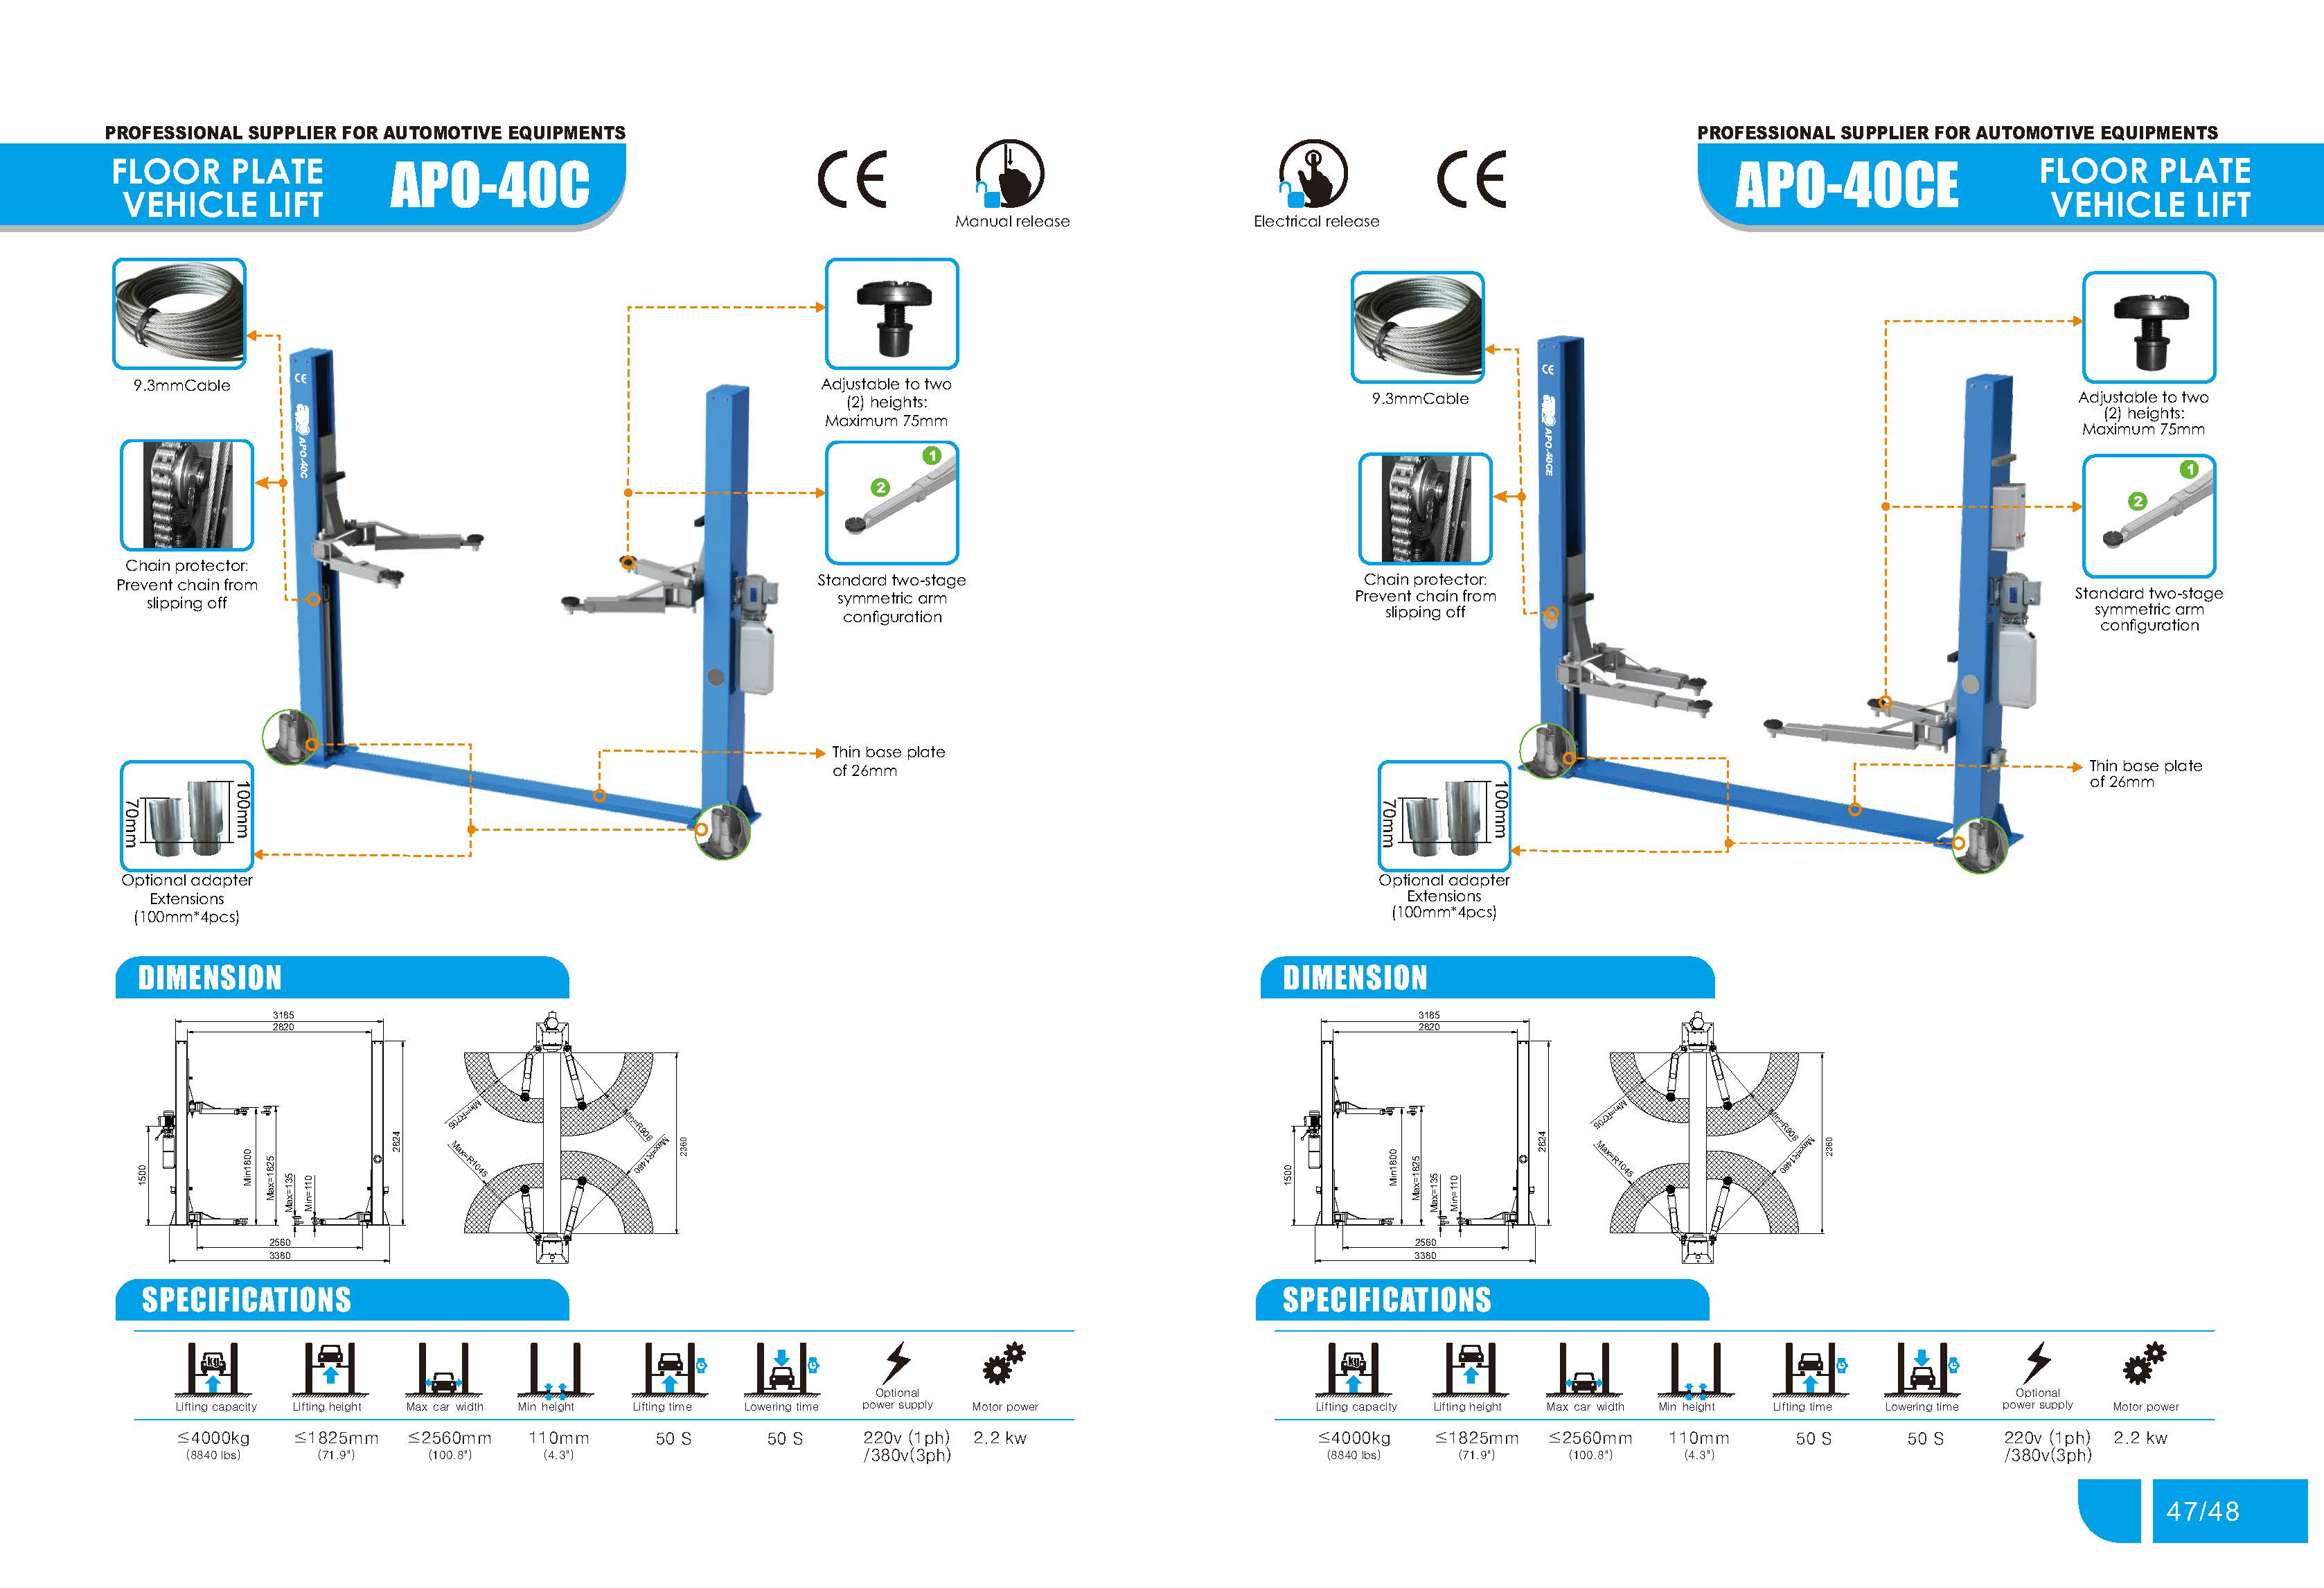 car lift wiring diagram 220 volt html with 3 Wire 220 Volt Wiring Diagram on 2012 Dodge Ram 1500 Under Dash Electrical Diagrams besides Wells also  together with  in addition pressor Slide Valve Wiring Diagram.